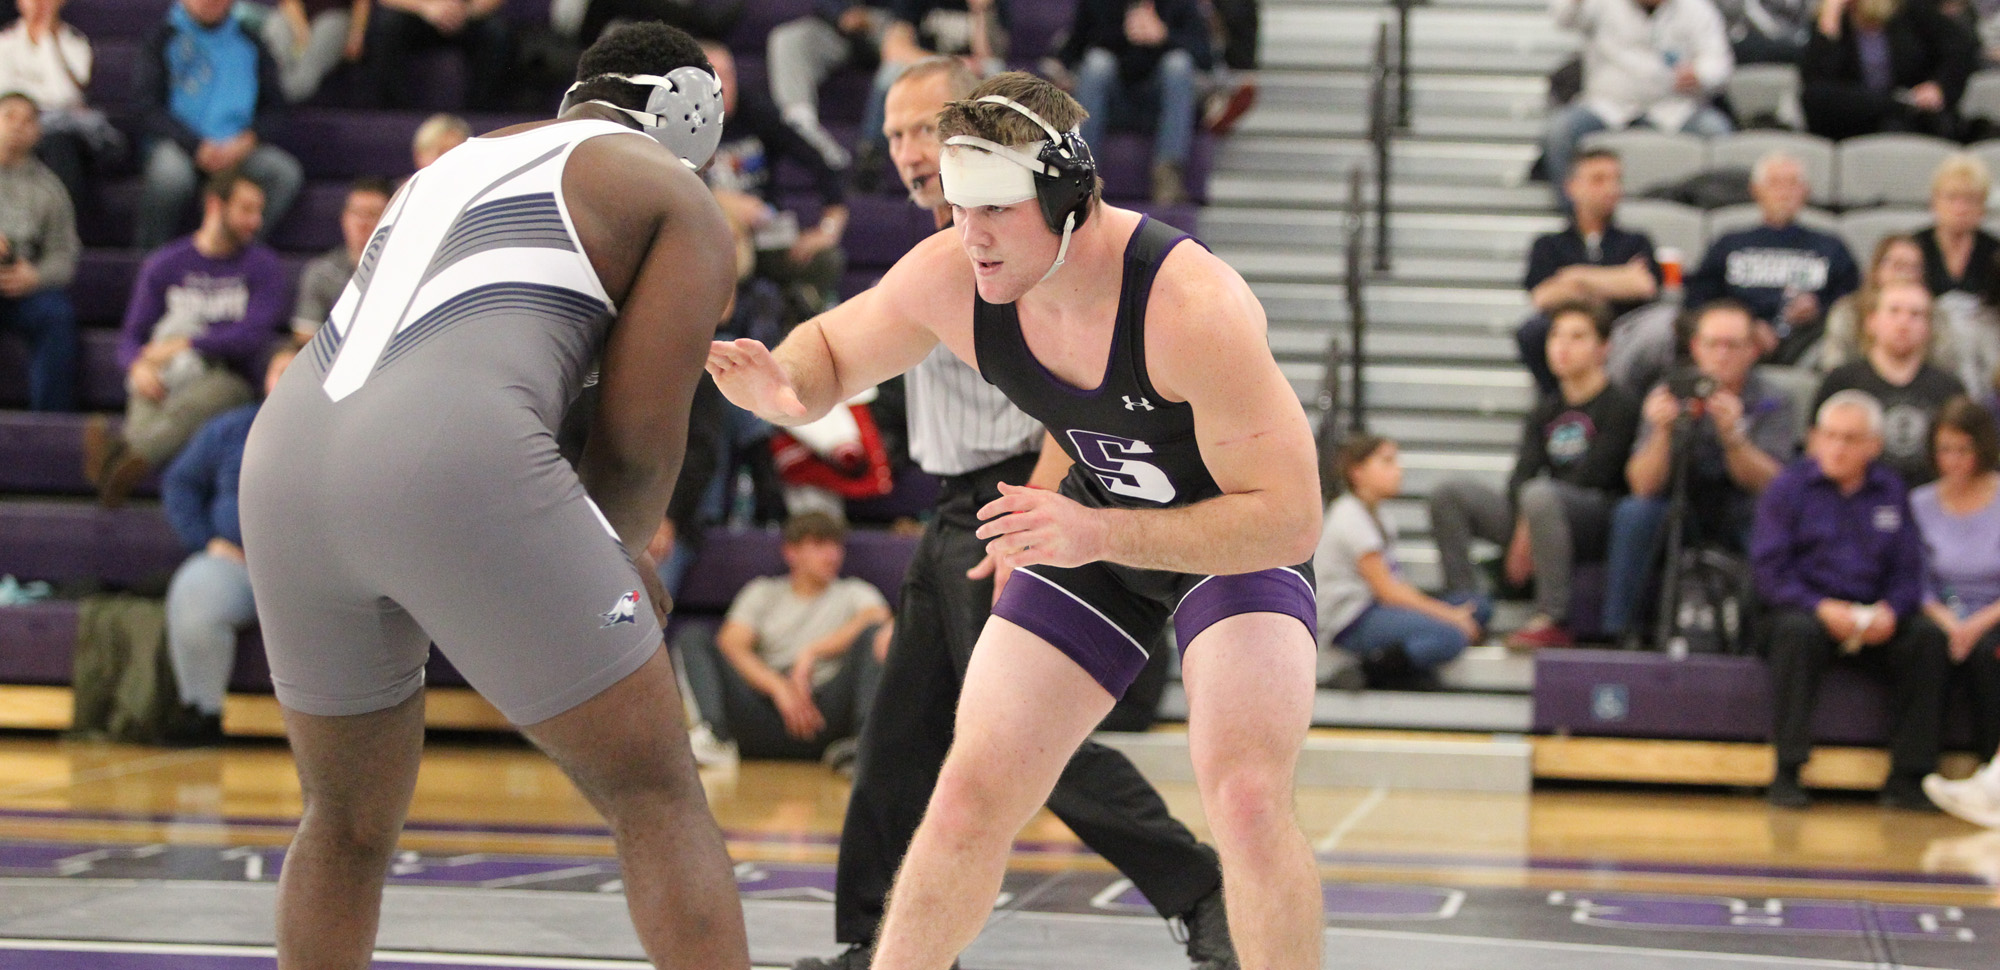 Keegan Connelly posted a technical fall win at 285 pounds on Tuesday night at East Stroudsburg.